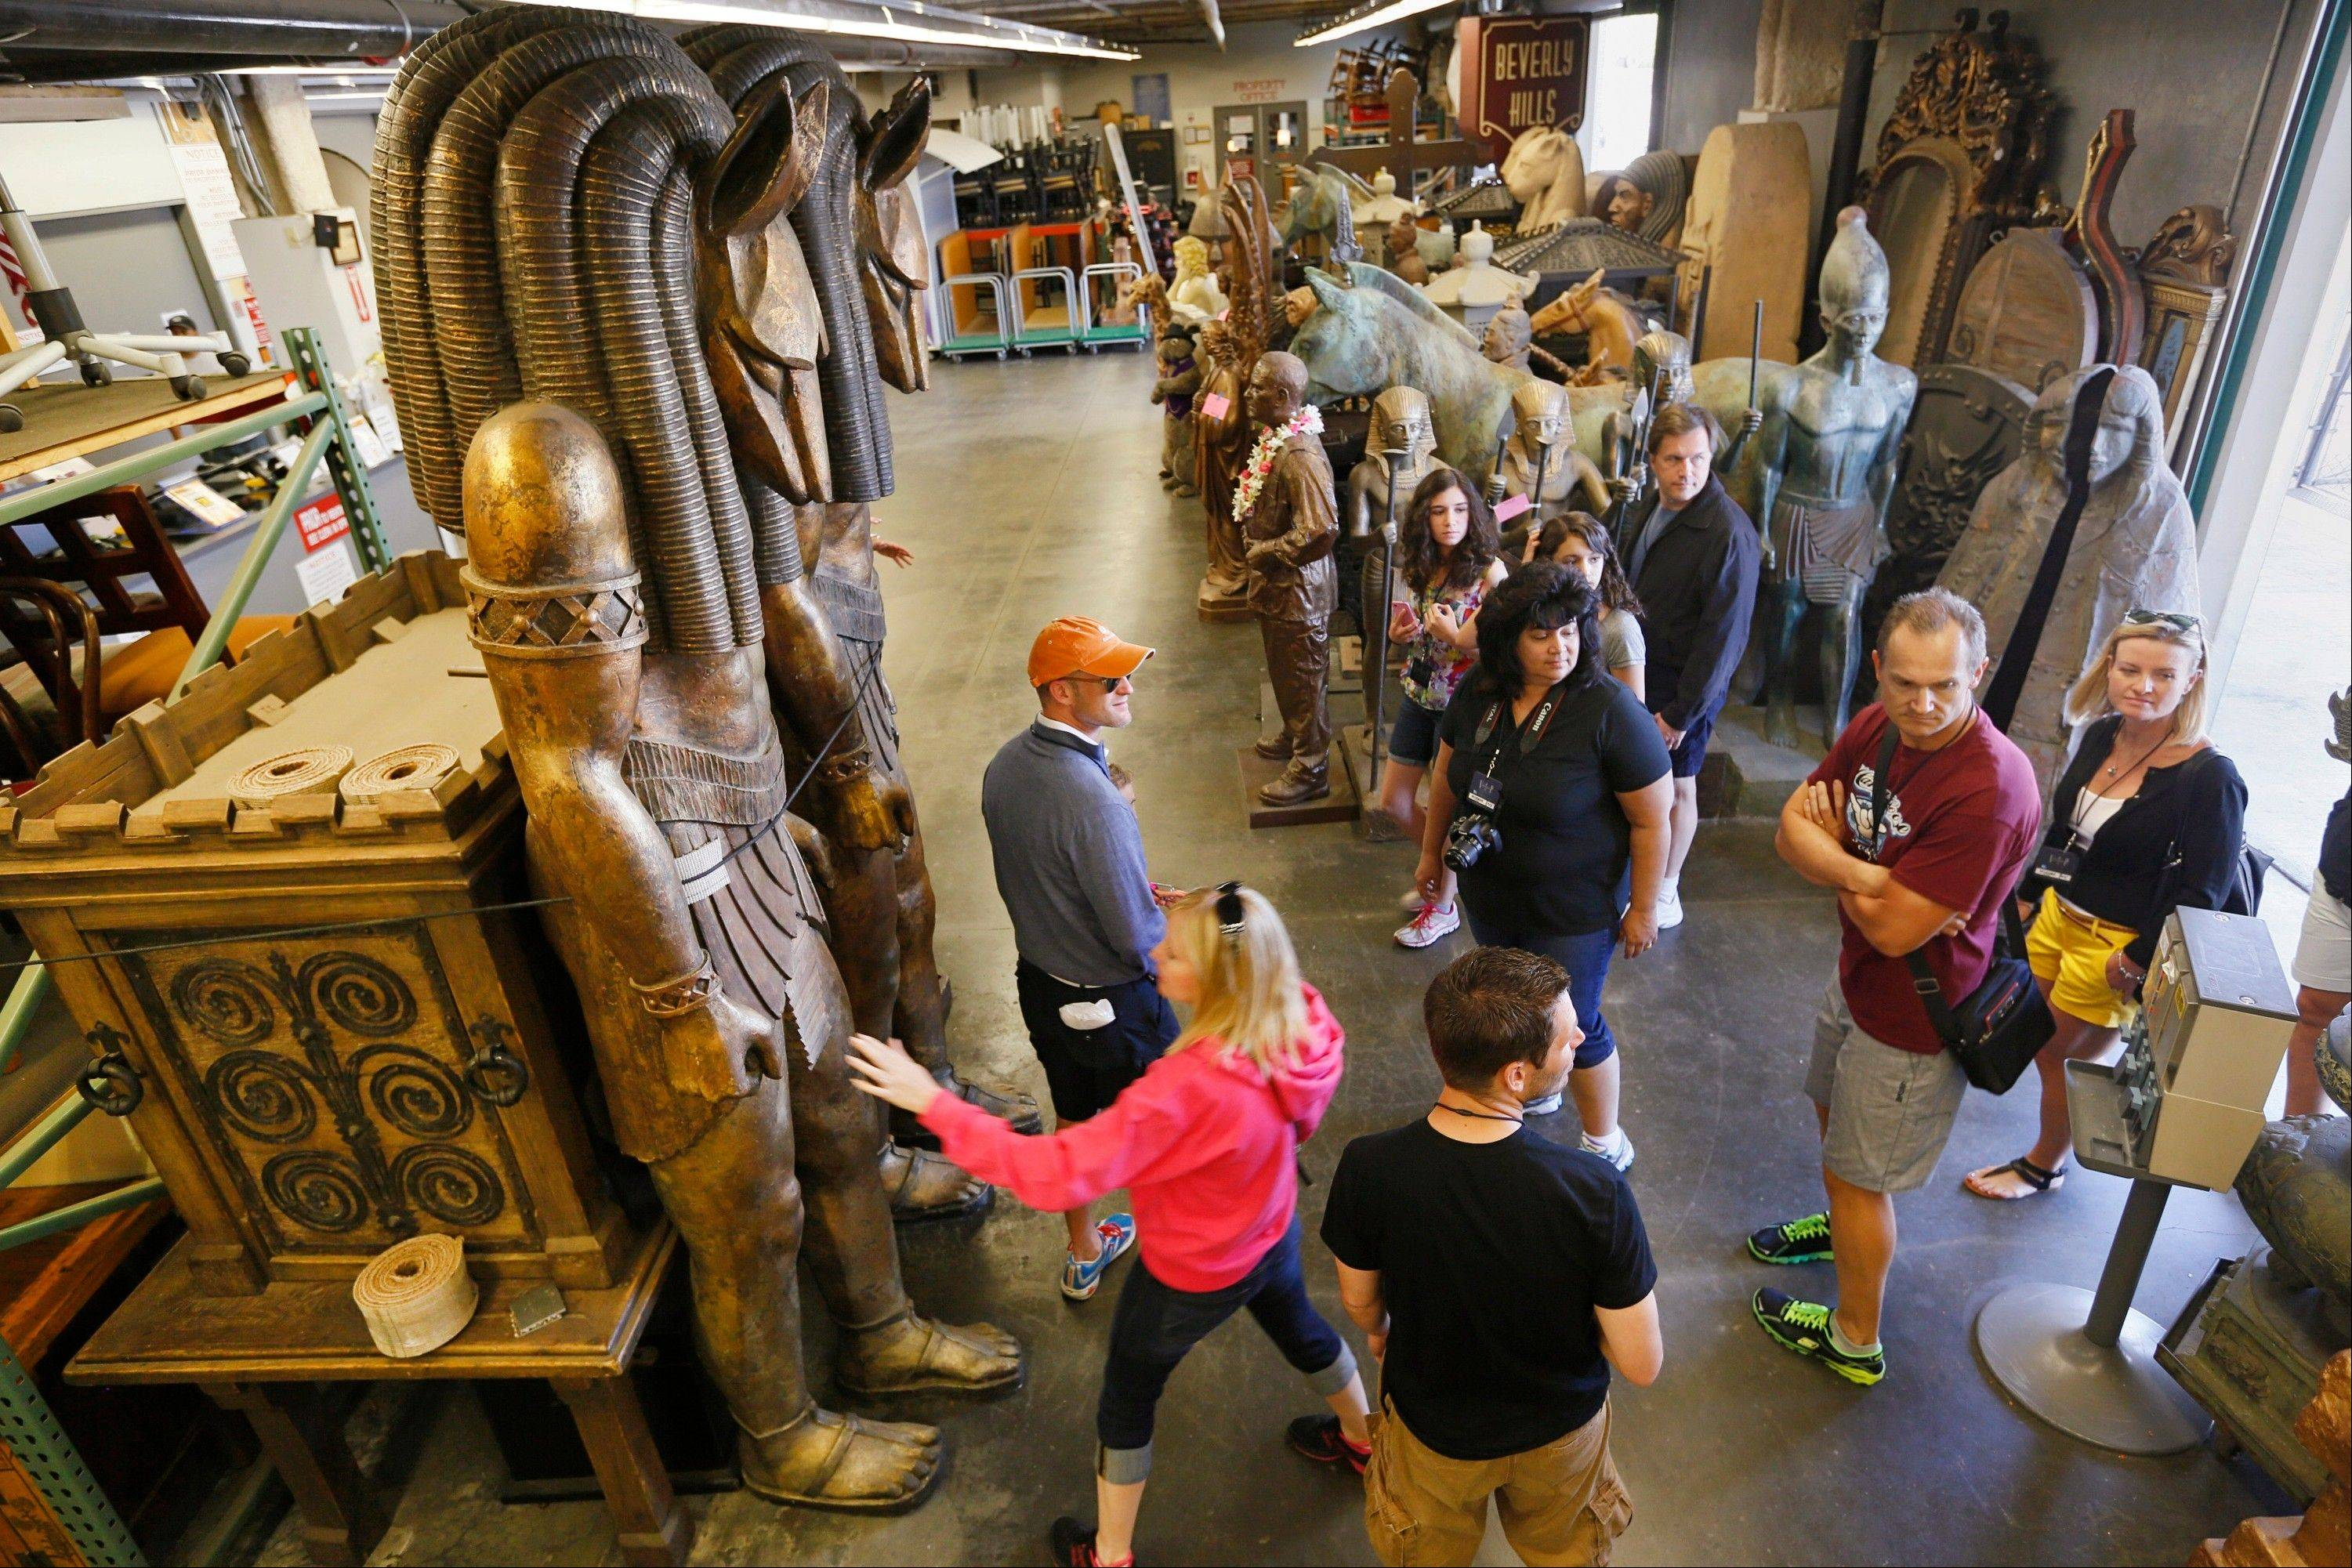 Visitors enjoy the VIP Experience tour at Universal Studios Hollywood in Los Angeles. Many parks now have VIP tours with perks usually reserved for celebrities � private tour guides, no waits for the biggest attractions, reserved seating at shows and parades along with behind-the-scenes peaks at places normally off limits.